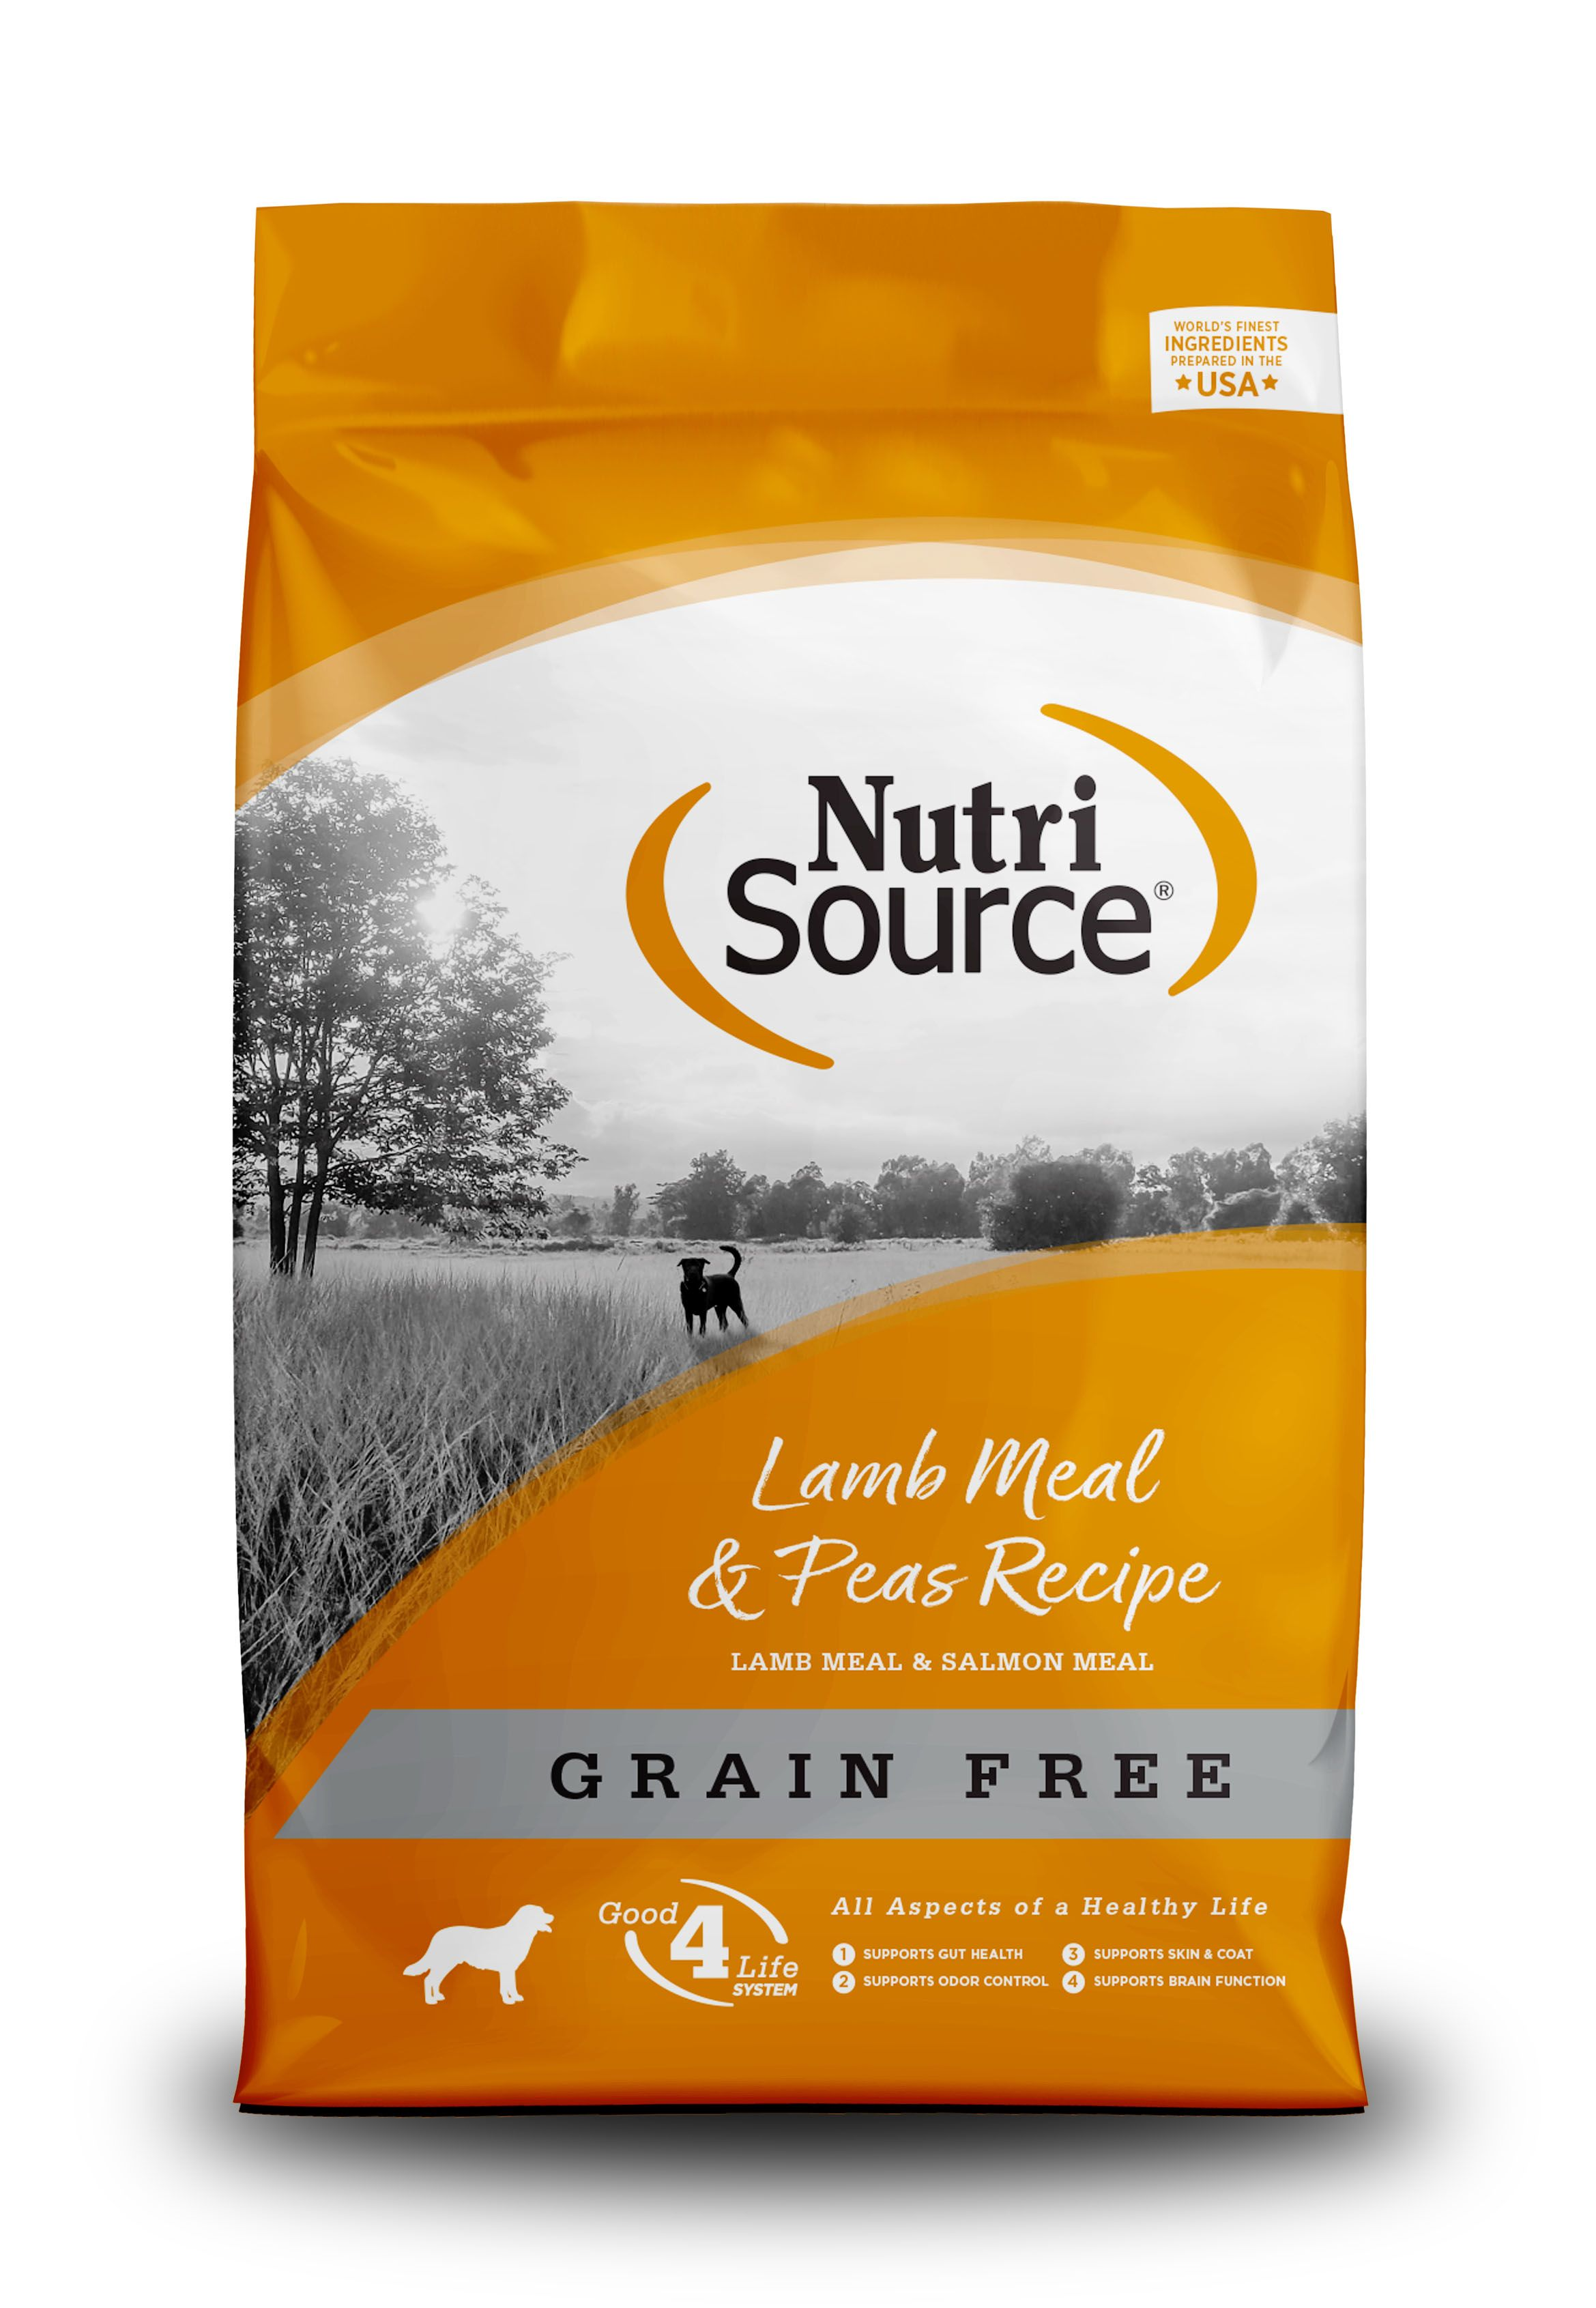 NutriSource Lamb Meal and Peas Formula Grain Free Dry Dog Food Image